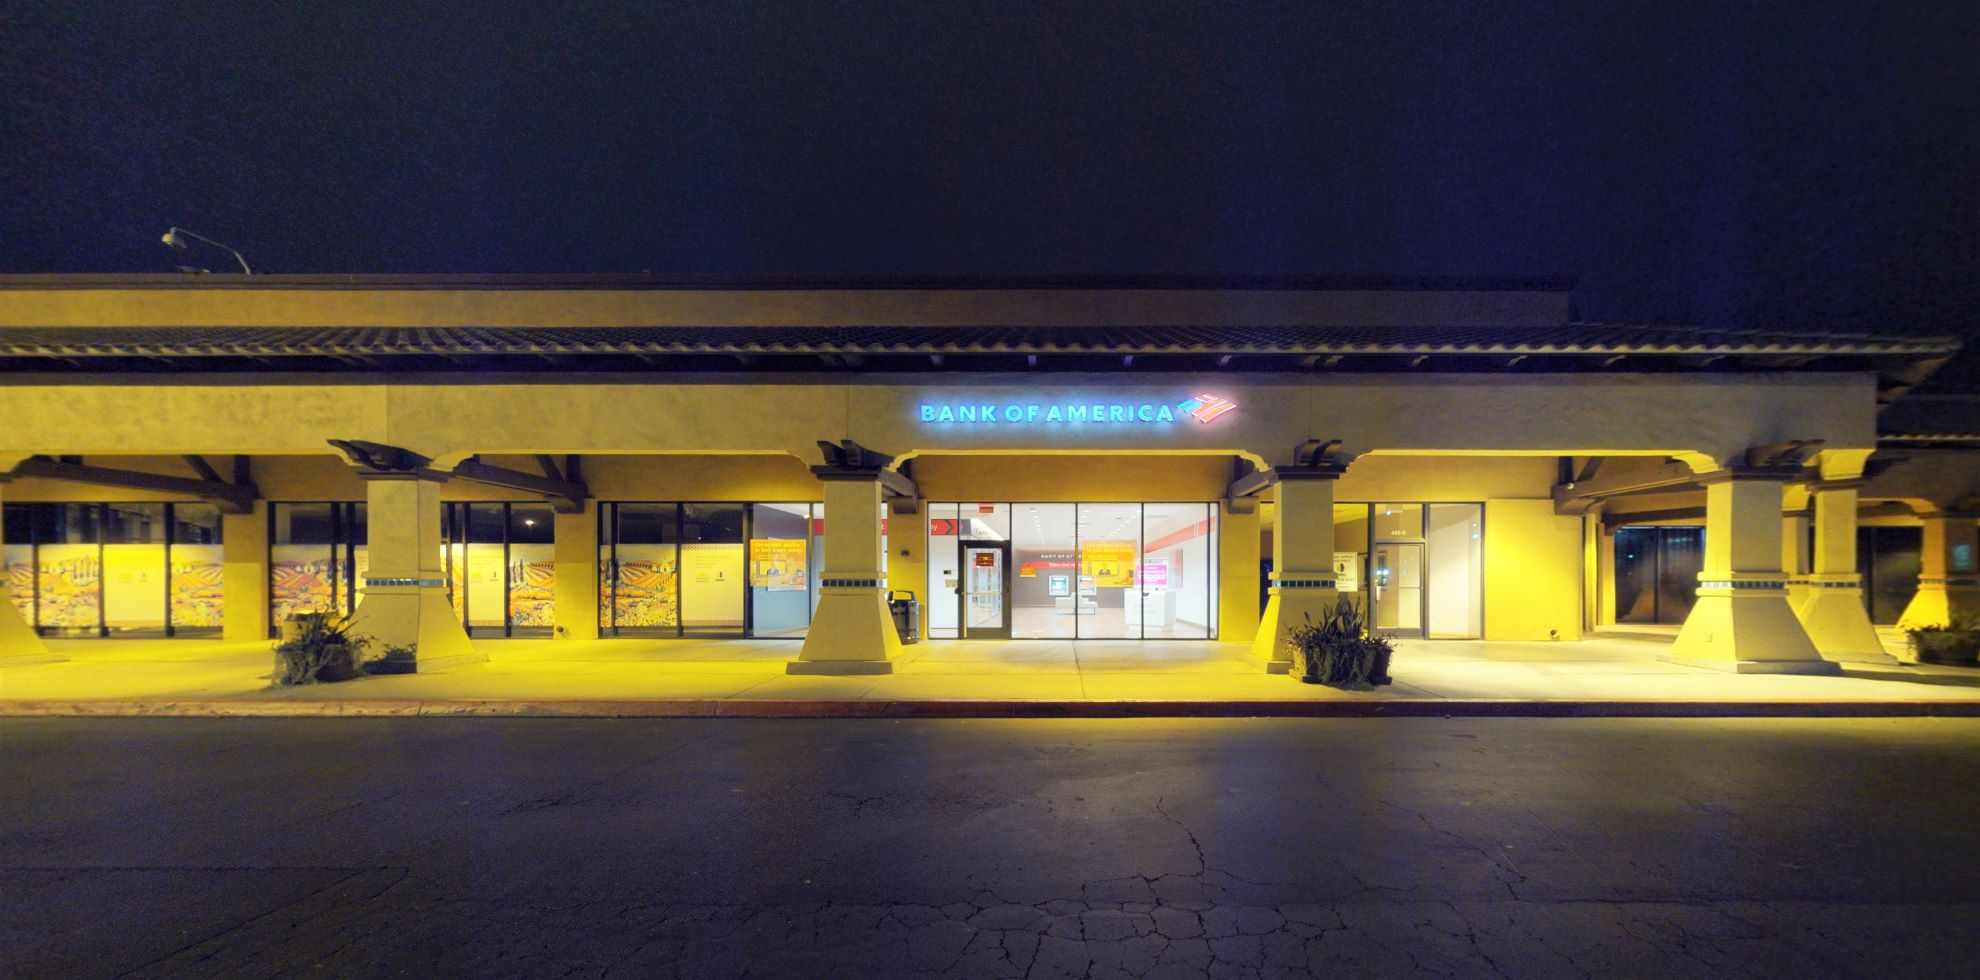 Bank of America Advanced Center with walk-up ATM | 455 College Blvd STE 6, Oceanside, CA 92057